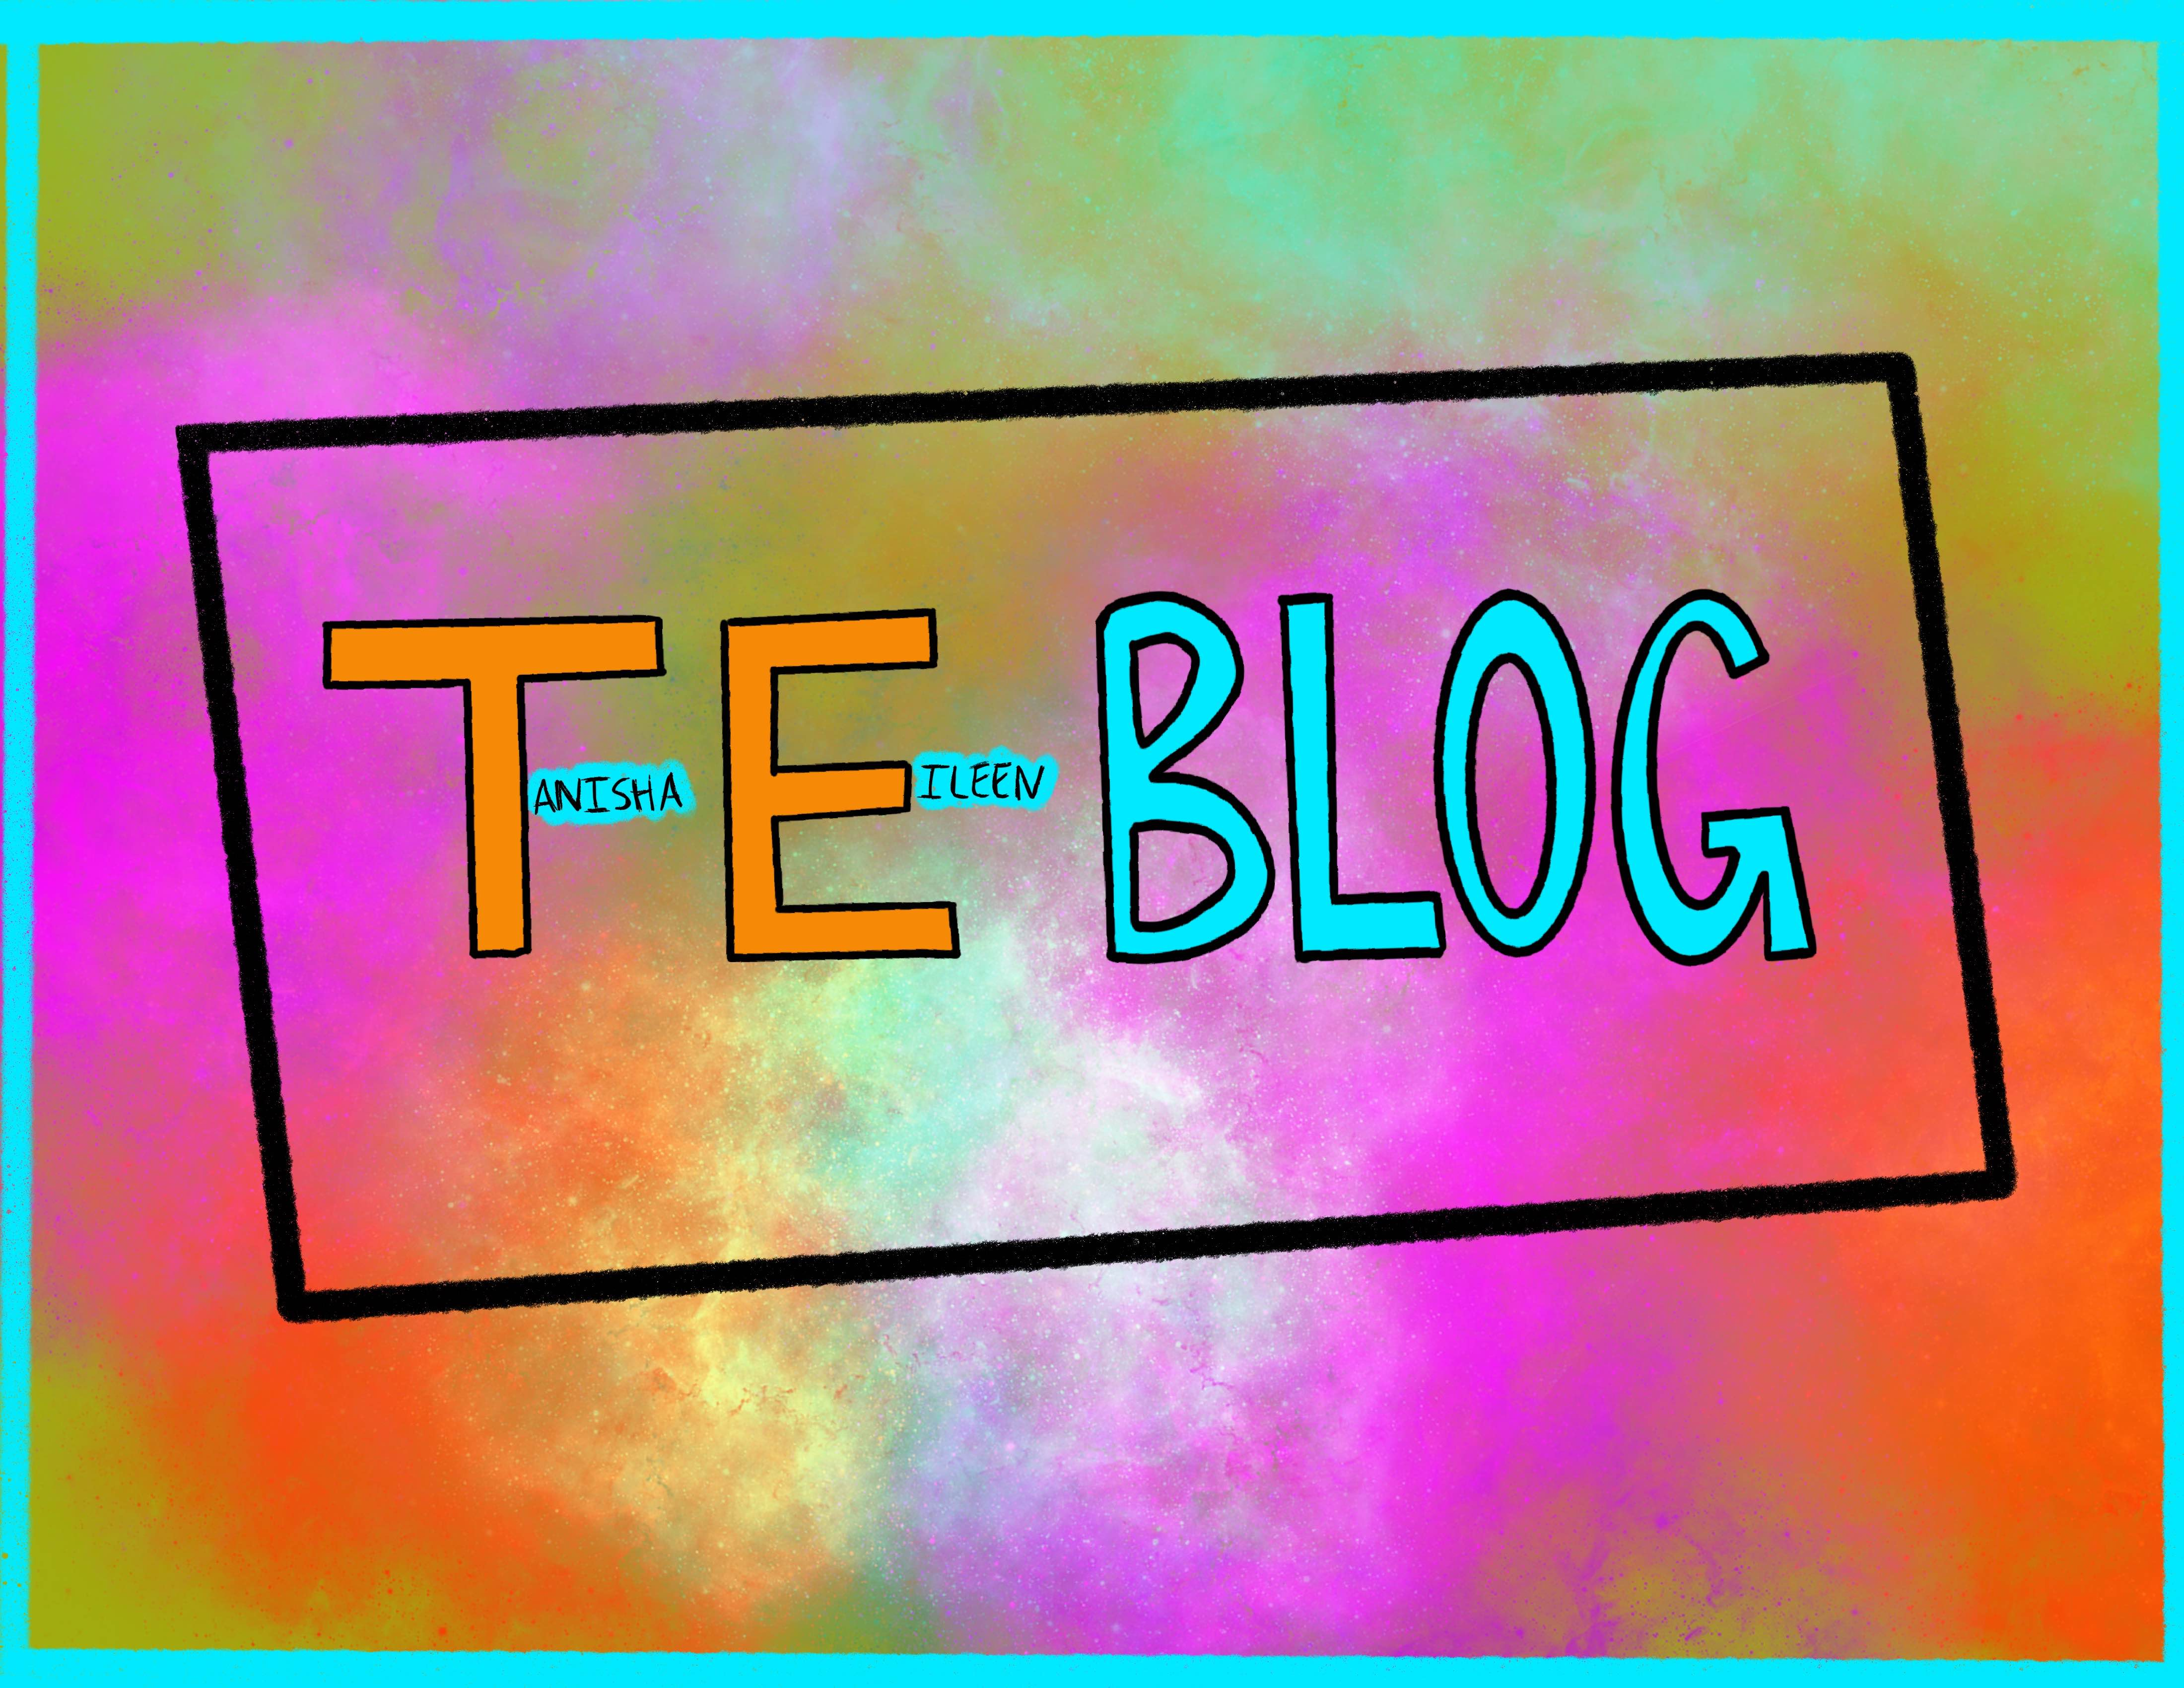 The Tanisha Eileen Blog